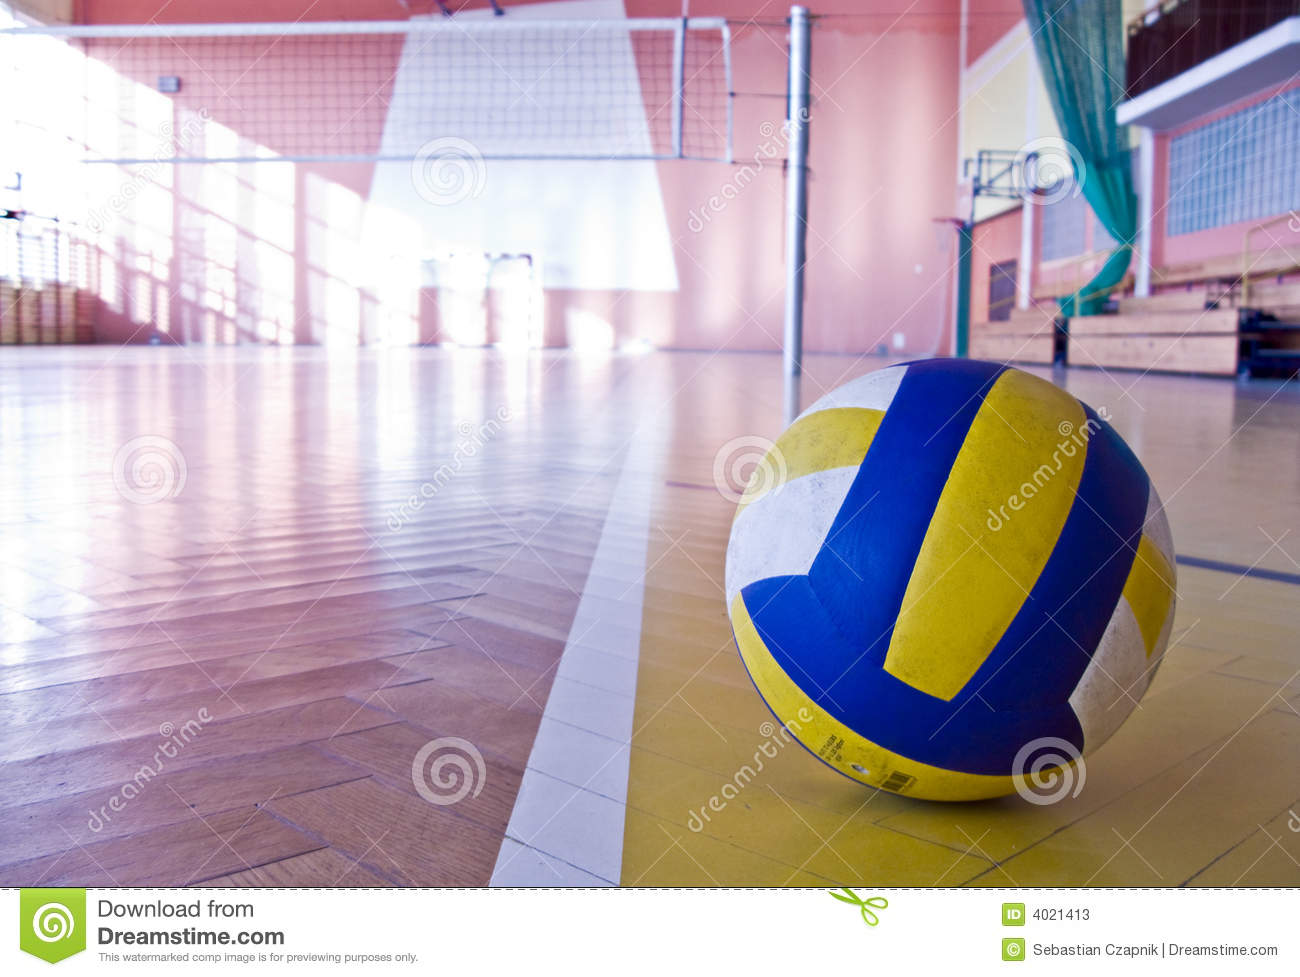 Volleyball in a gym on the floor clouseup